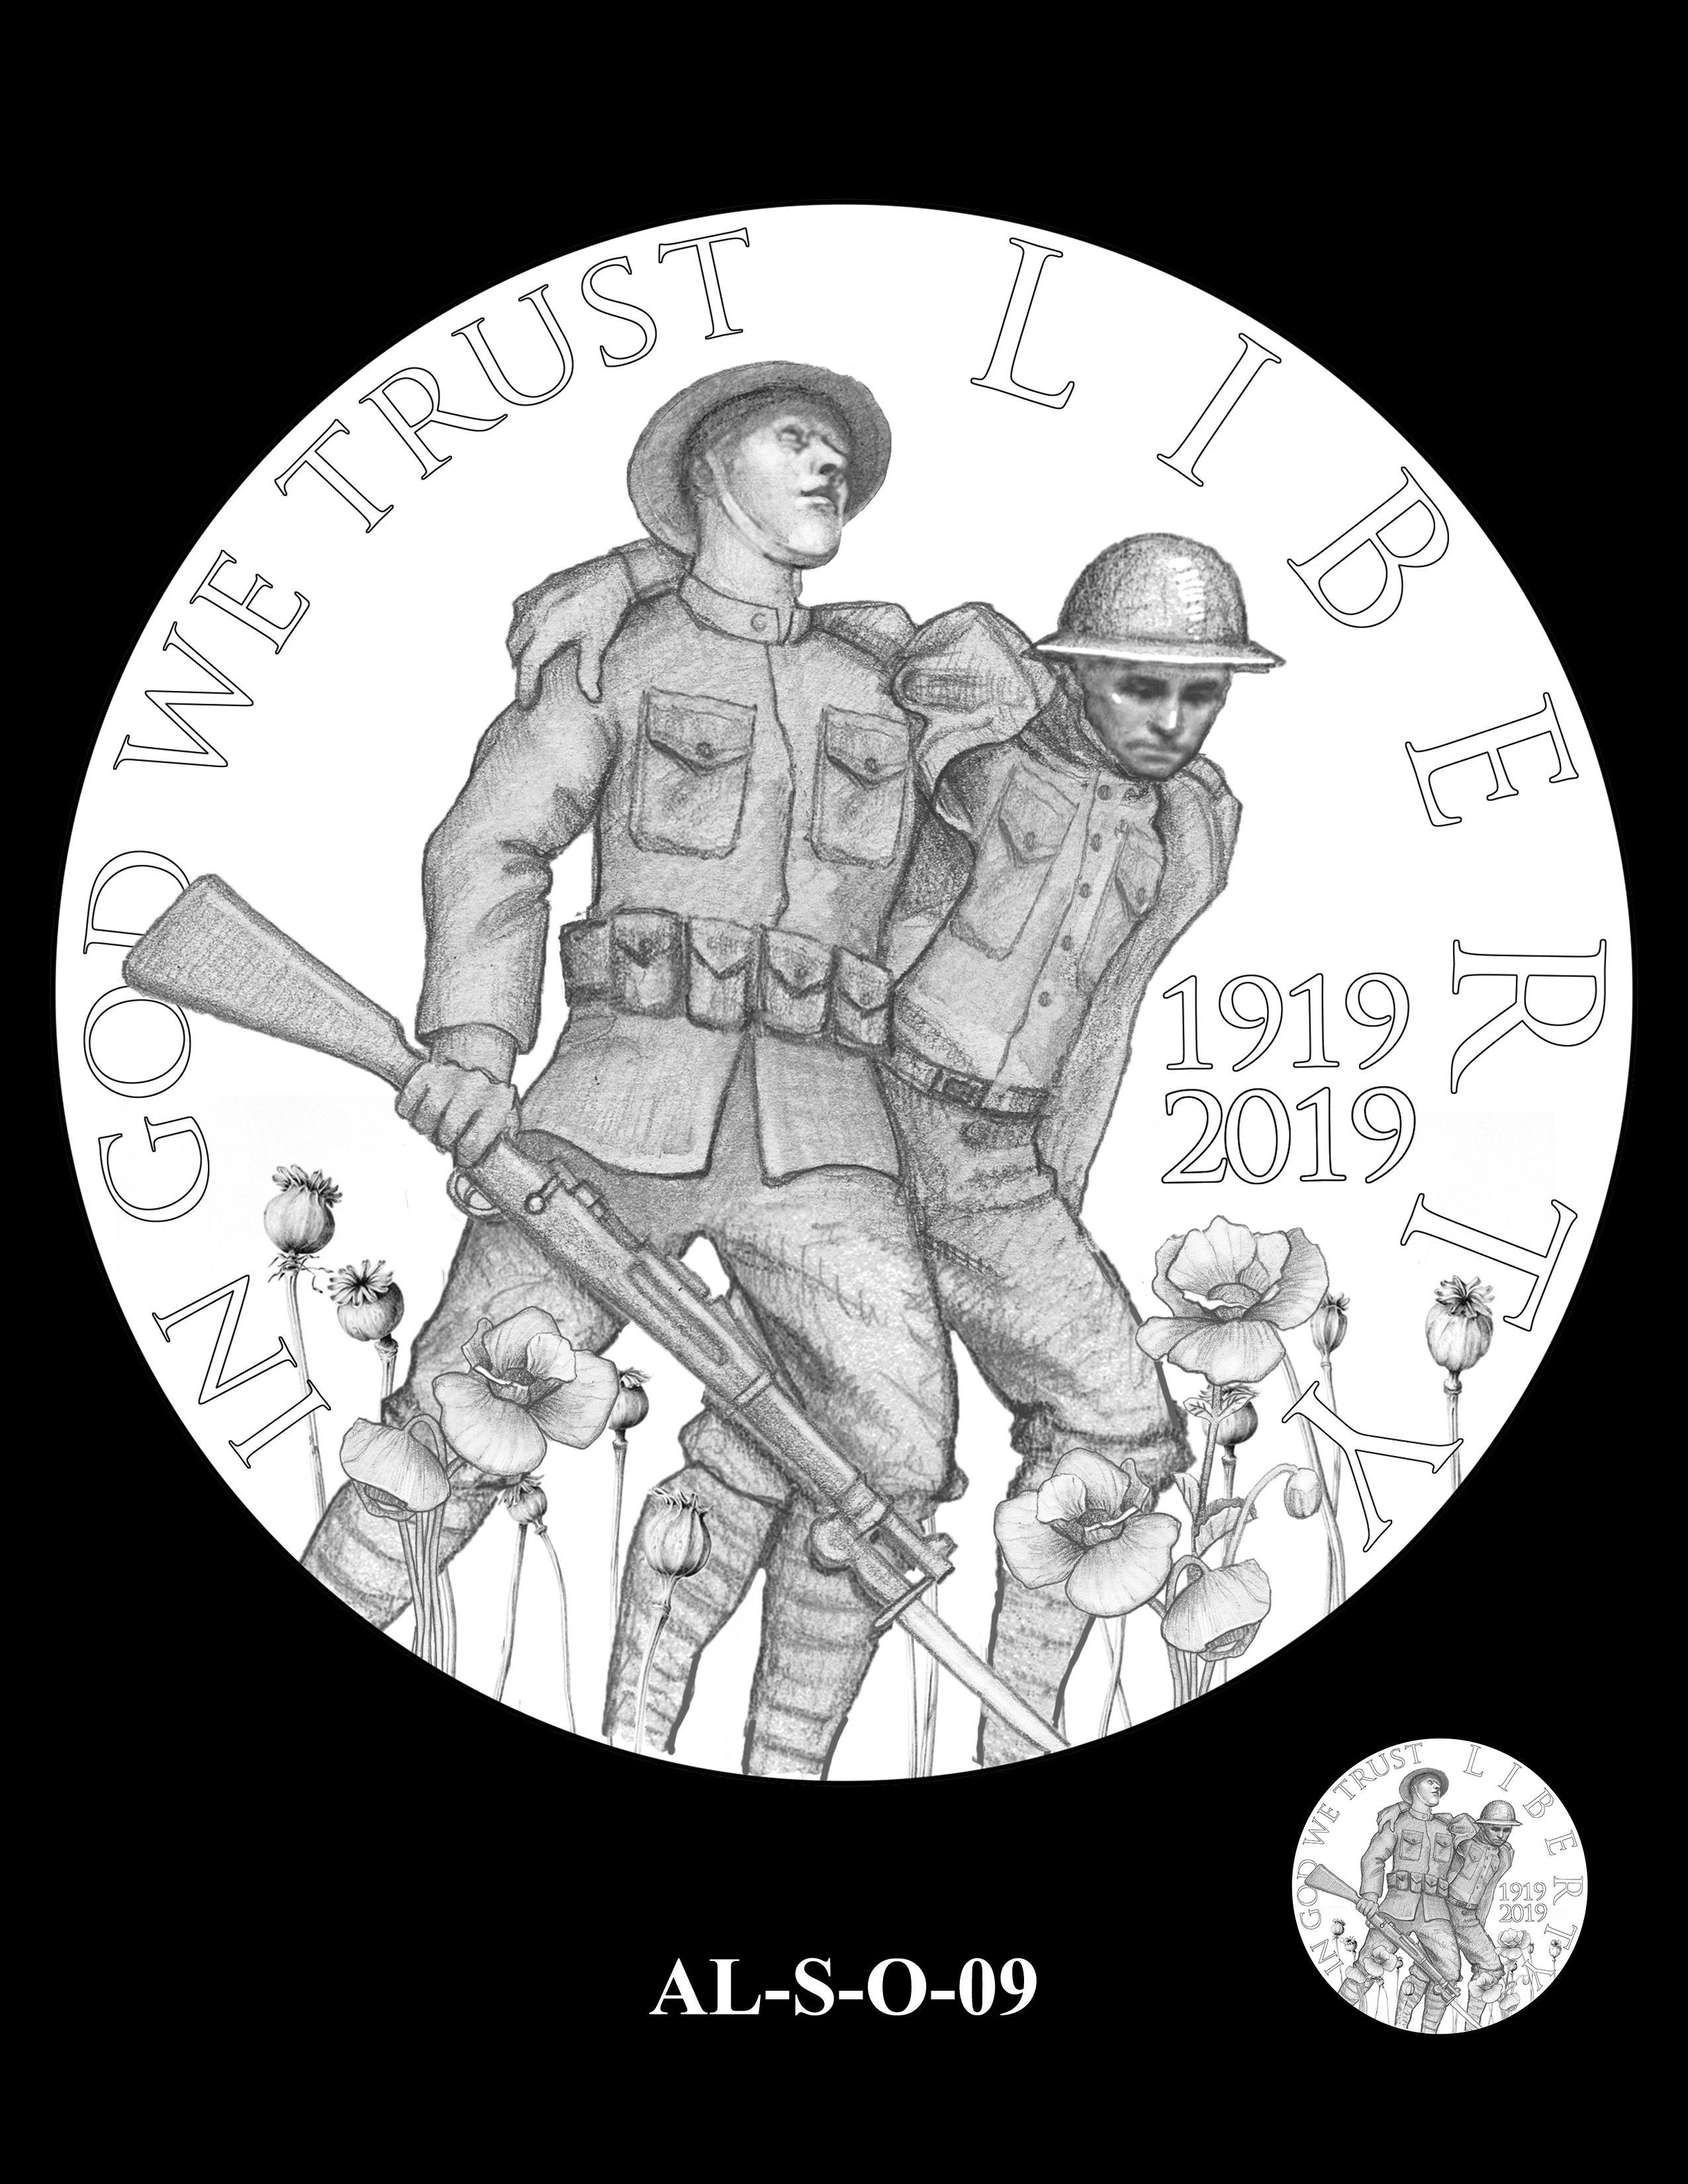 AL-S-O-09 -- 2019 American Legion 100th Anniversary Commemorative Coin Program - Silver Obverse